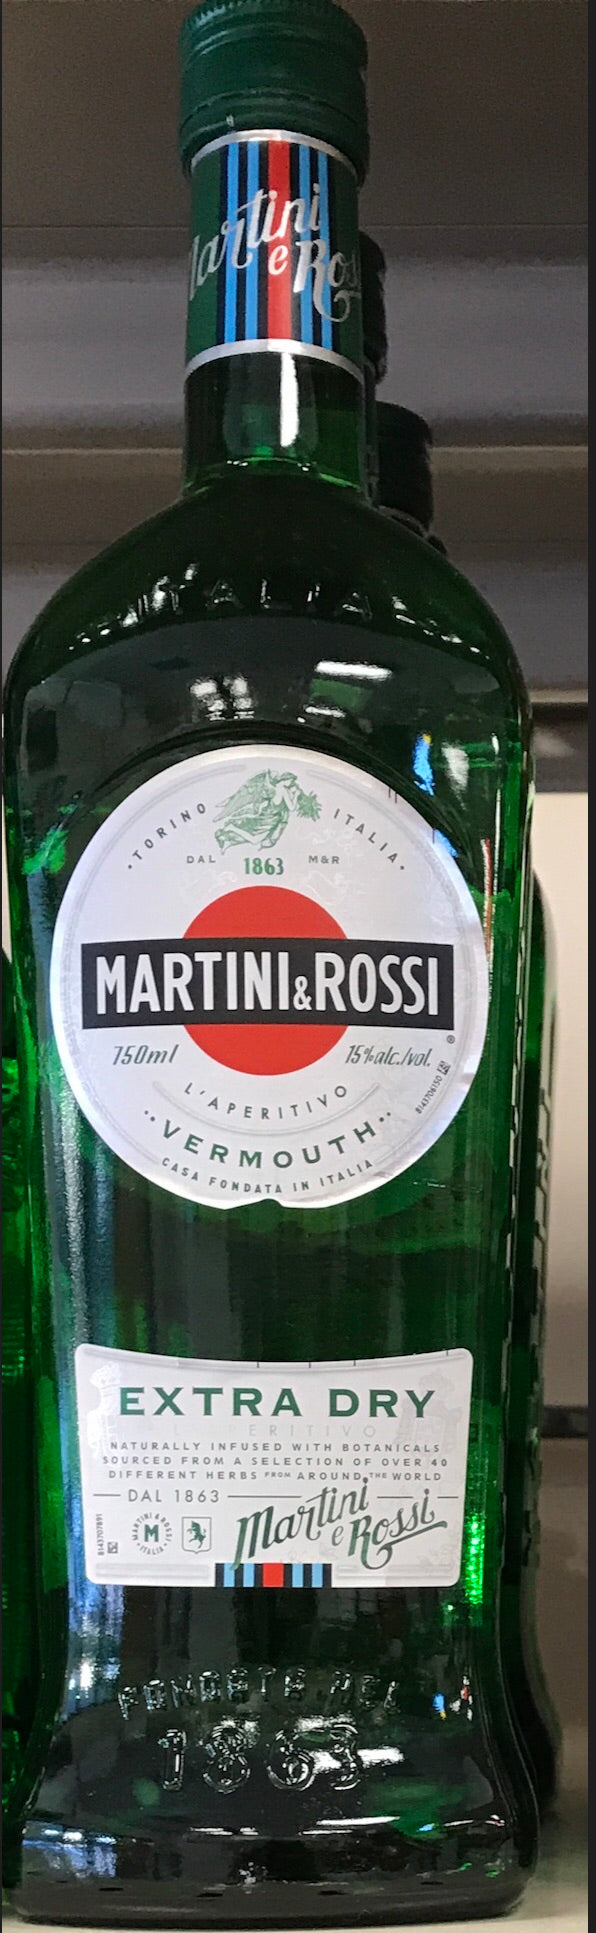 Martini & Rossi Extra Dry Vermouth 750ML